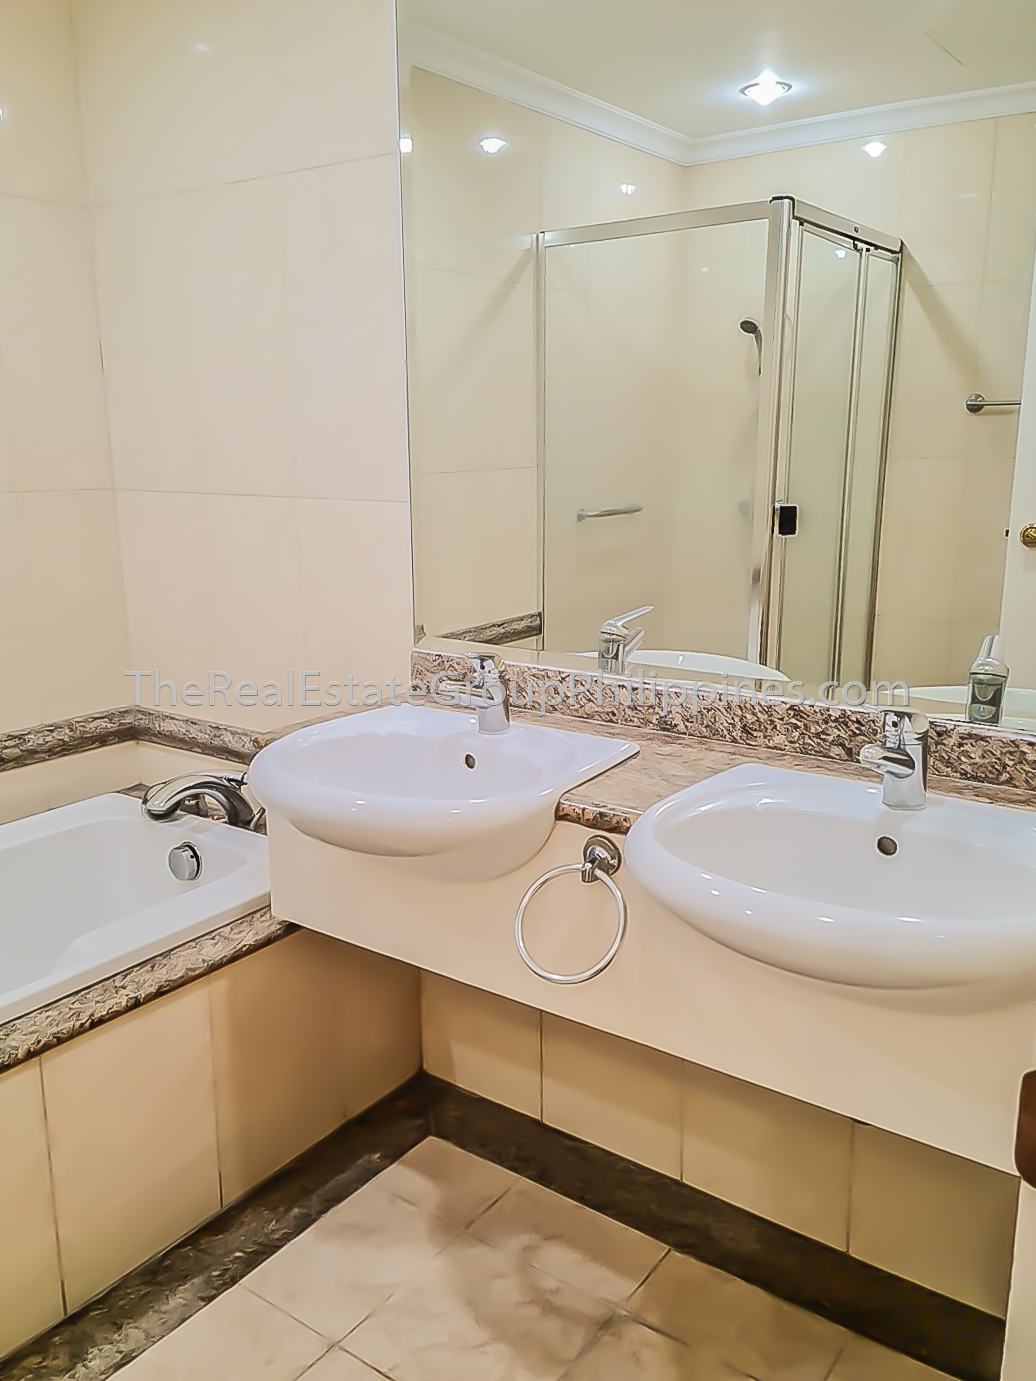 2BR Condo For Rent, The Shang Grand Tower, Legaspi Village, Makati-6